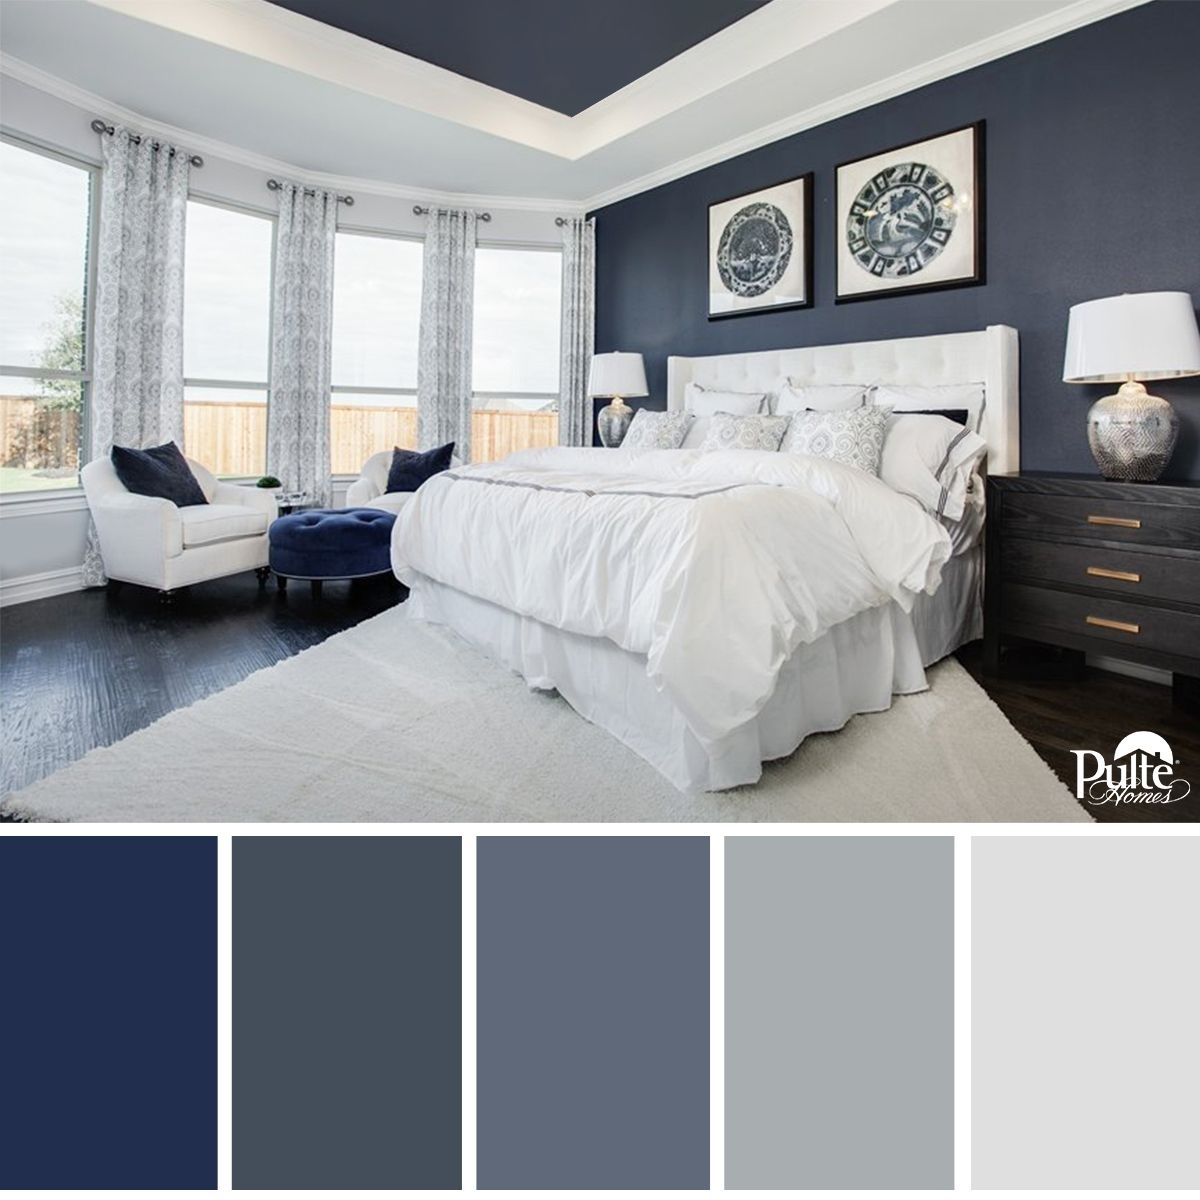 This Bedroom Design Has The Right Idea (View 15 of 15)